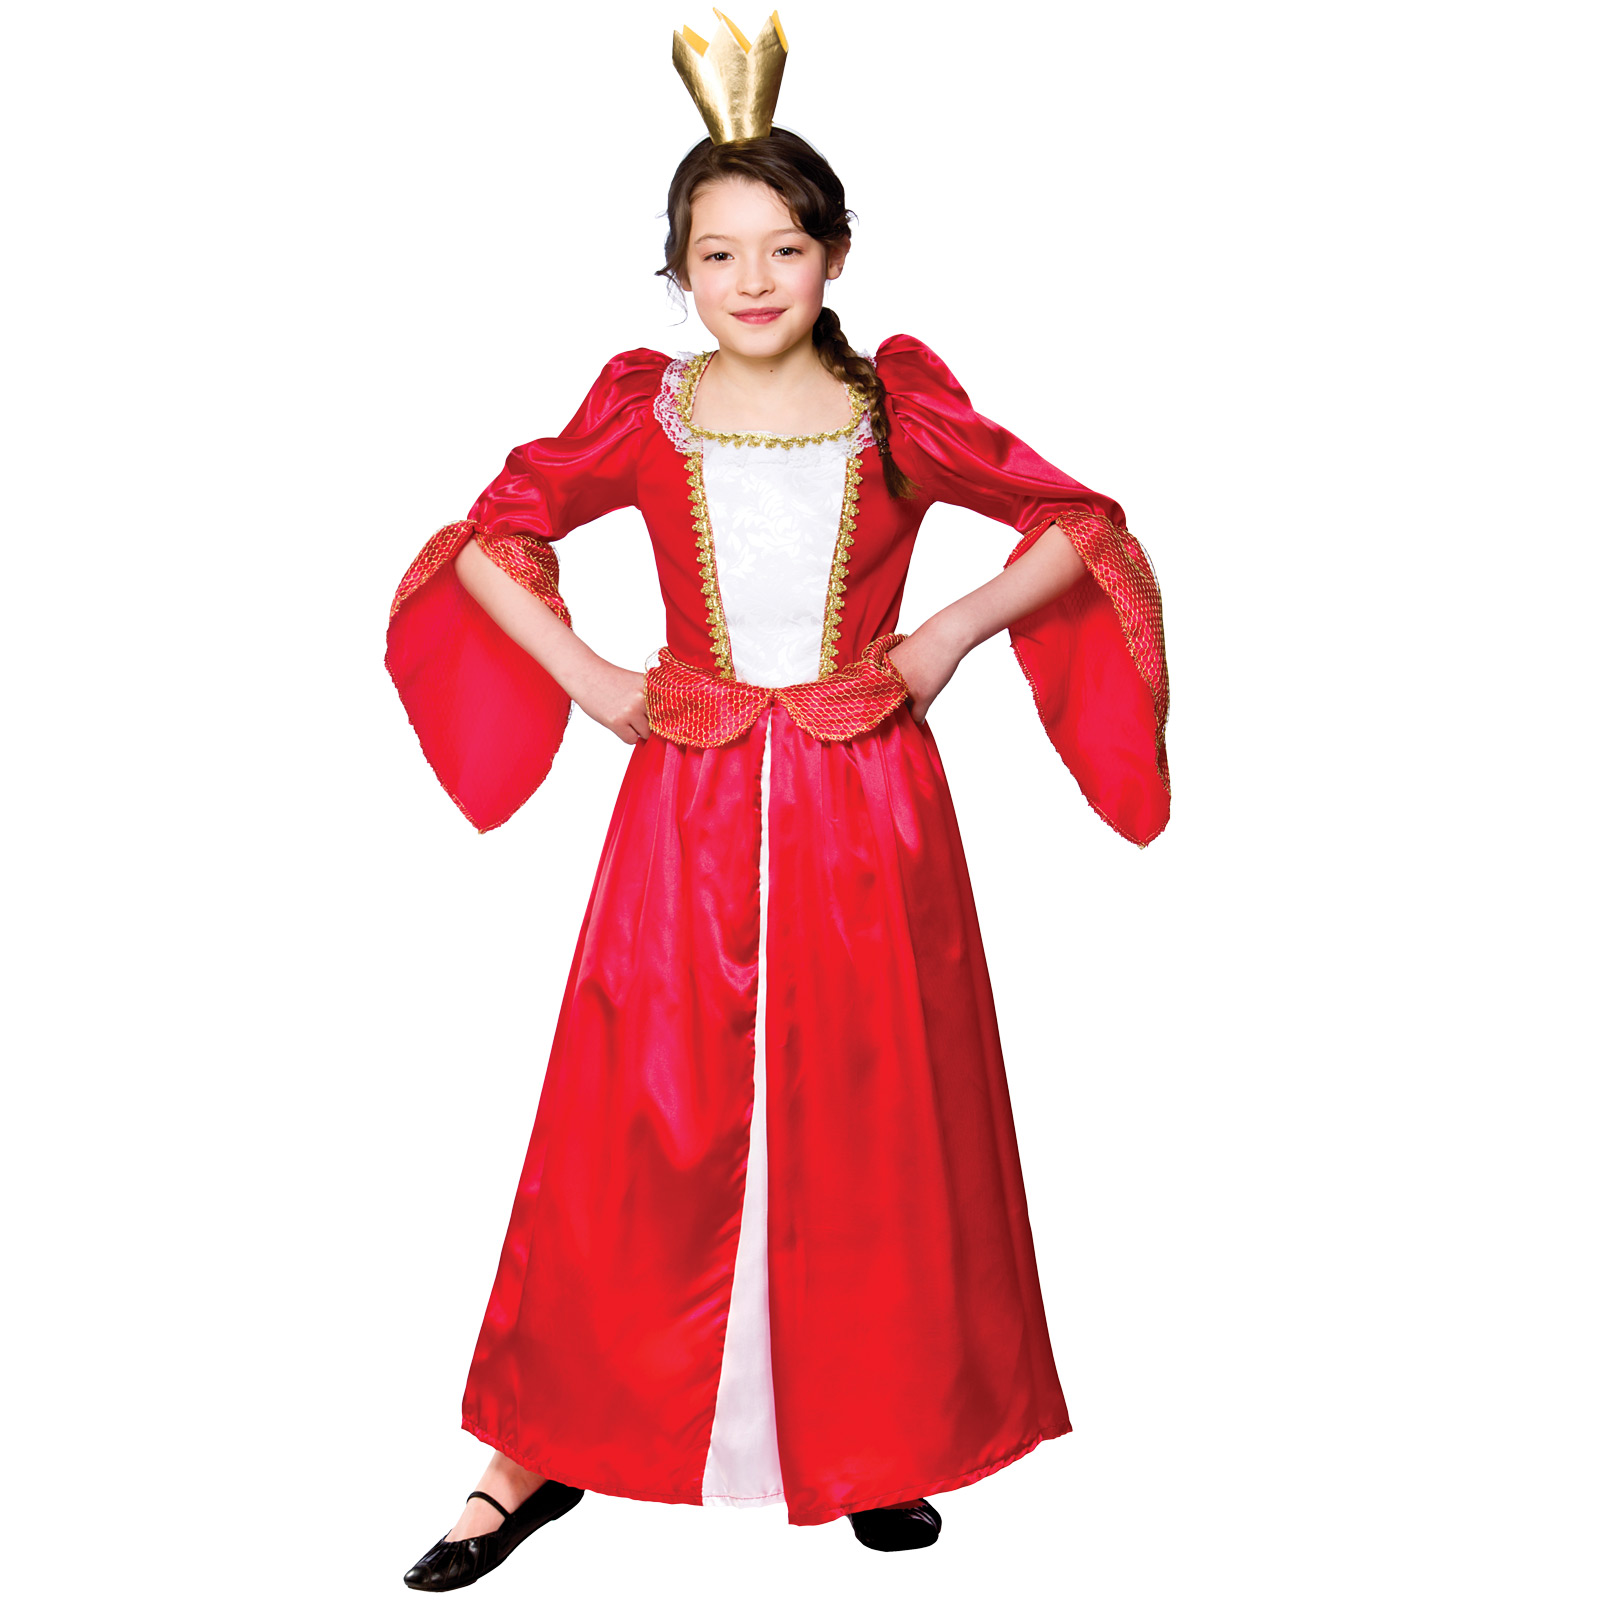 Girls Red Royal Medieval Queen Costume Fancy Dress Up Party ...